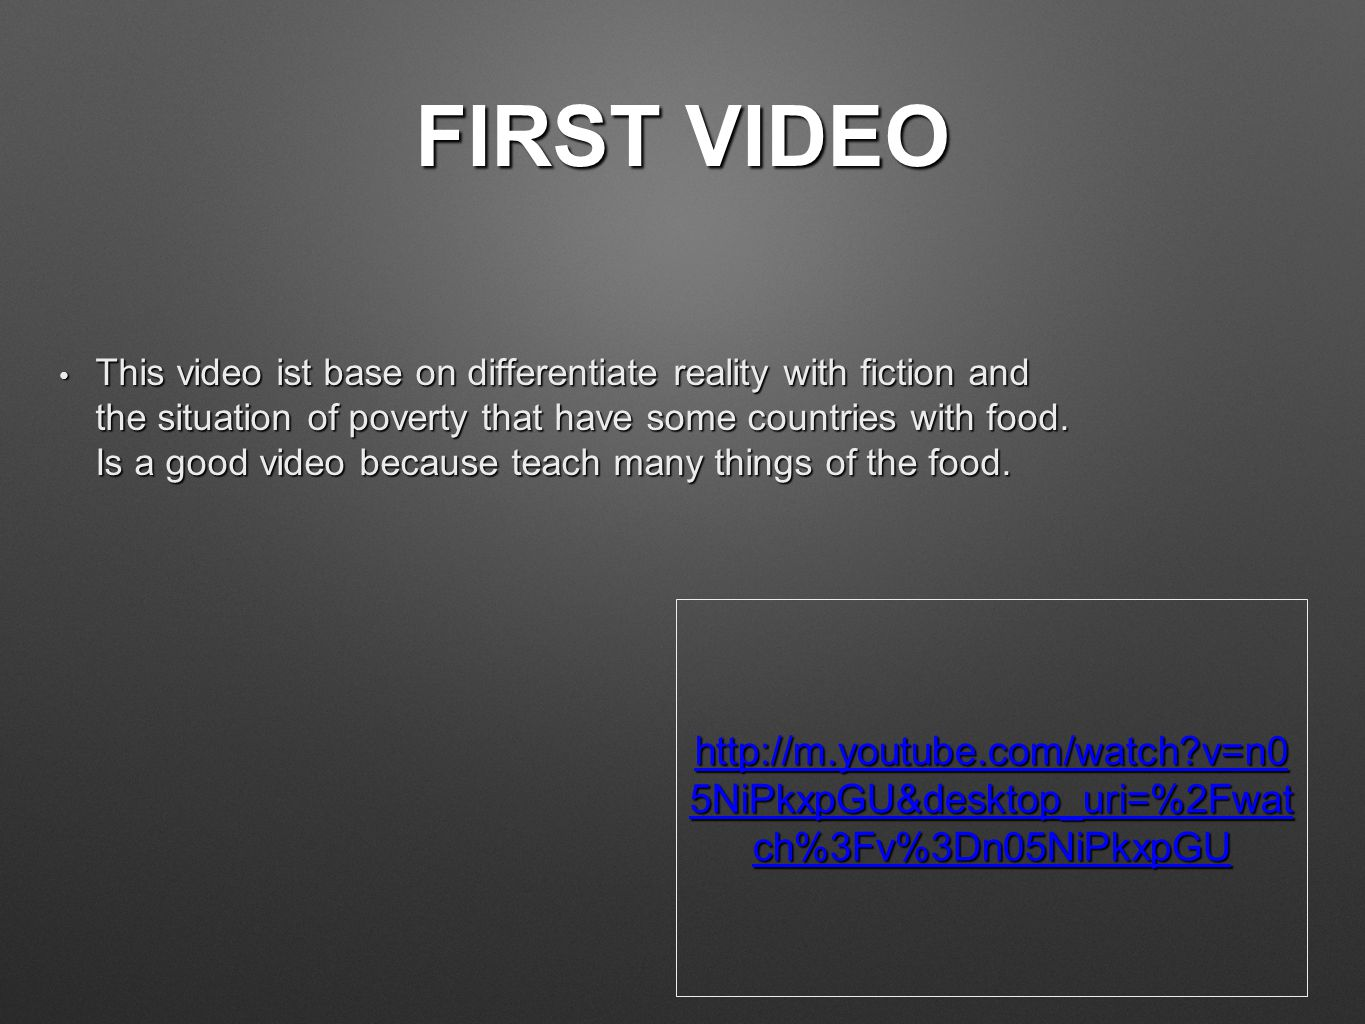 FIRST VIDEO This video ist base on differentiate reality with fiction and the situation of poverty that have some countries with food.